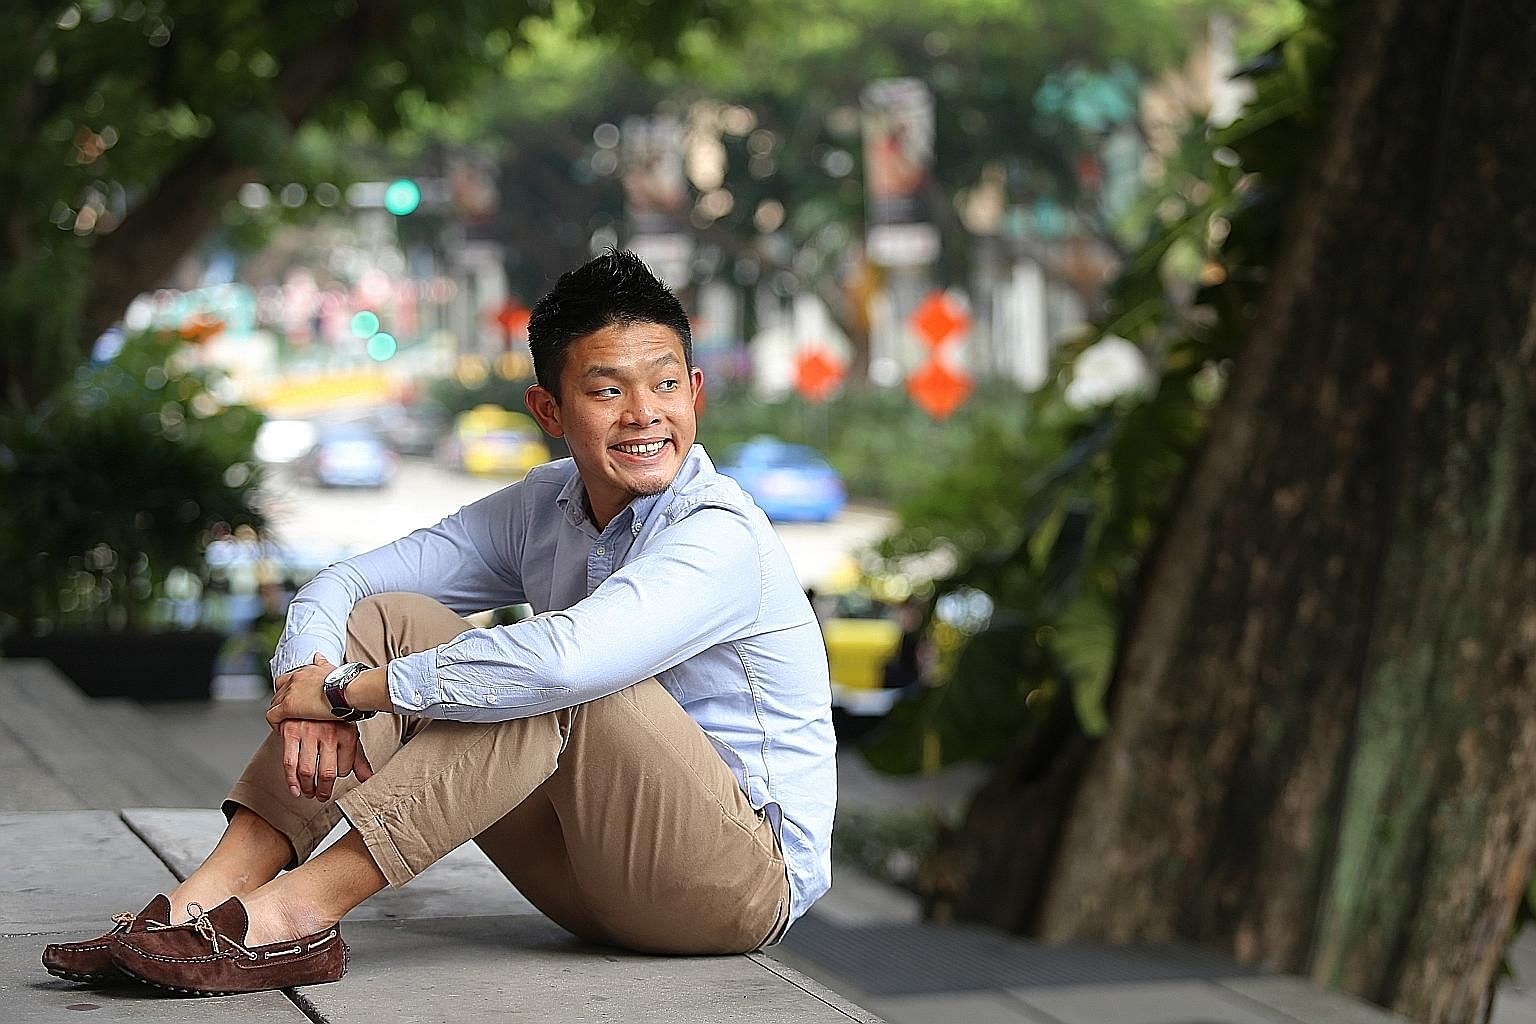 Mr David Hoe emerged from the academic wilderness to become a respected youth and student leader.